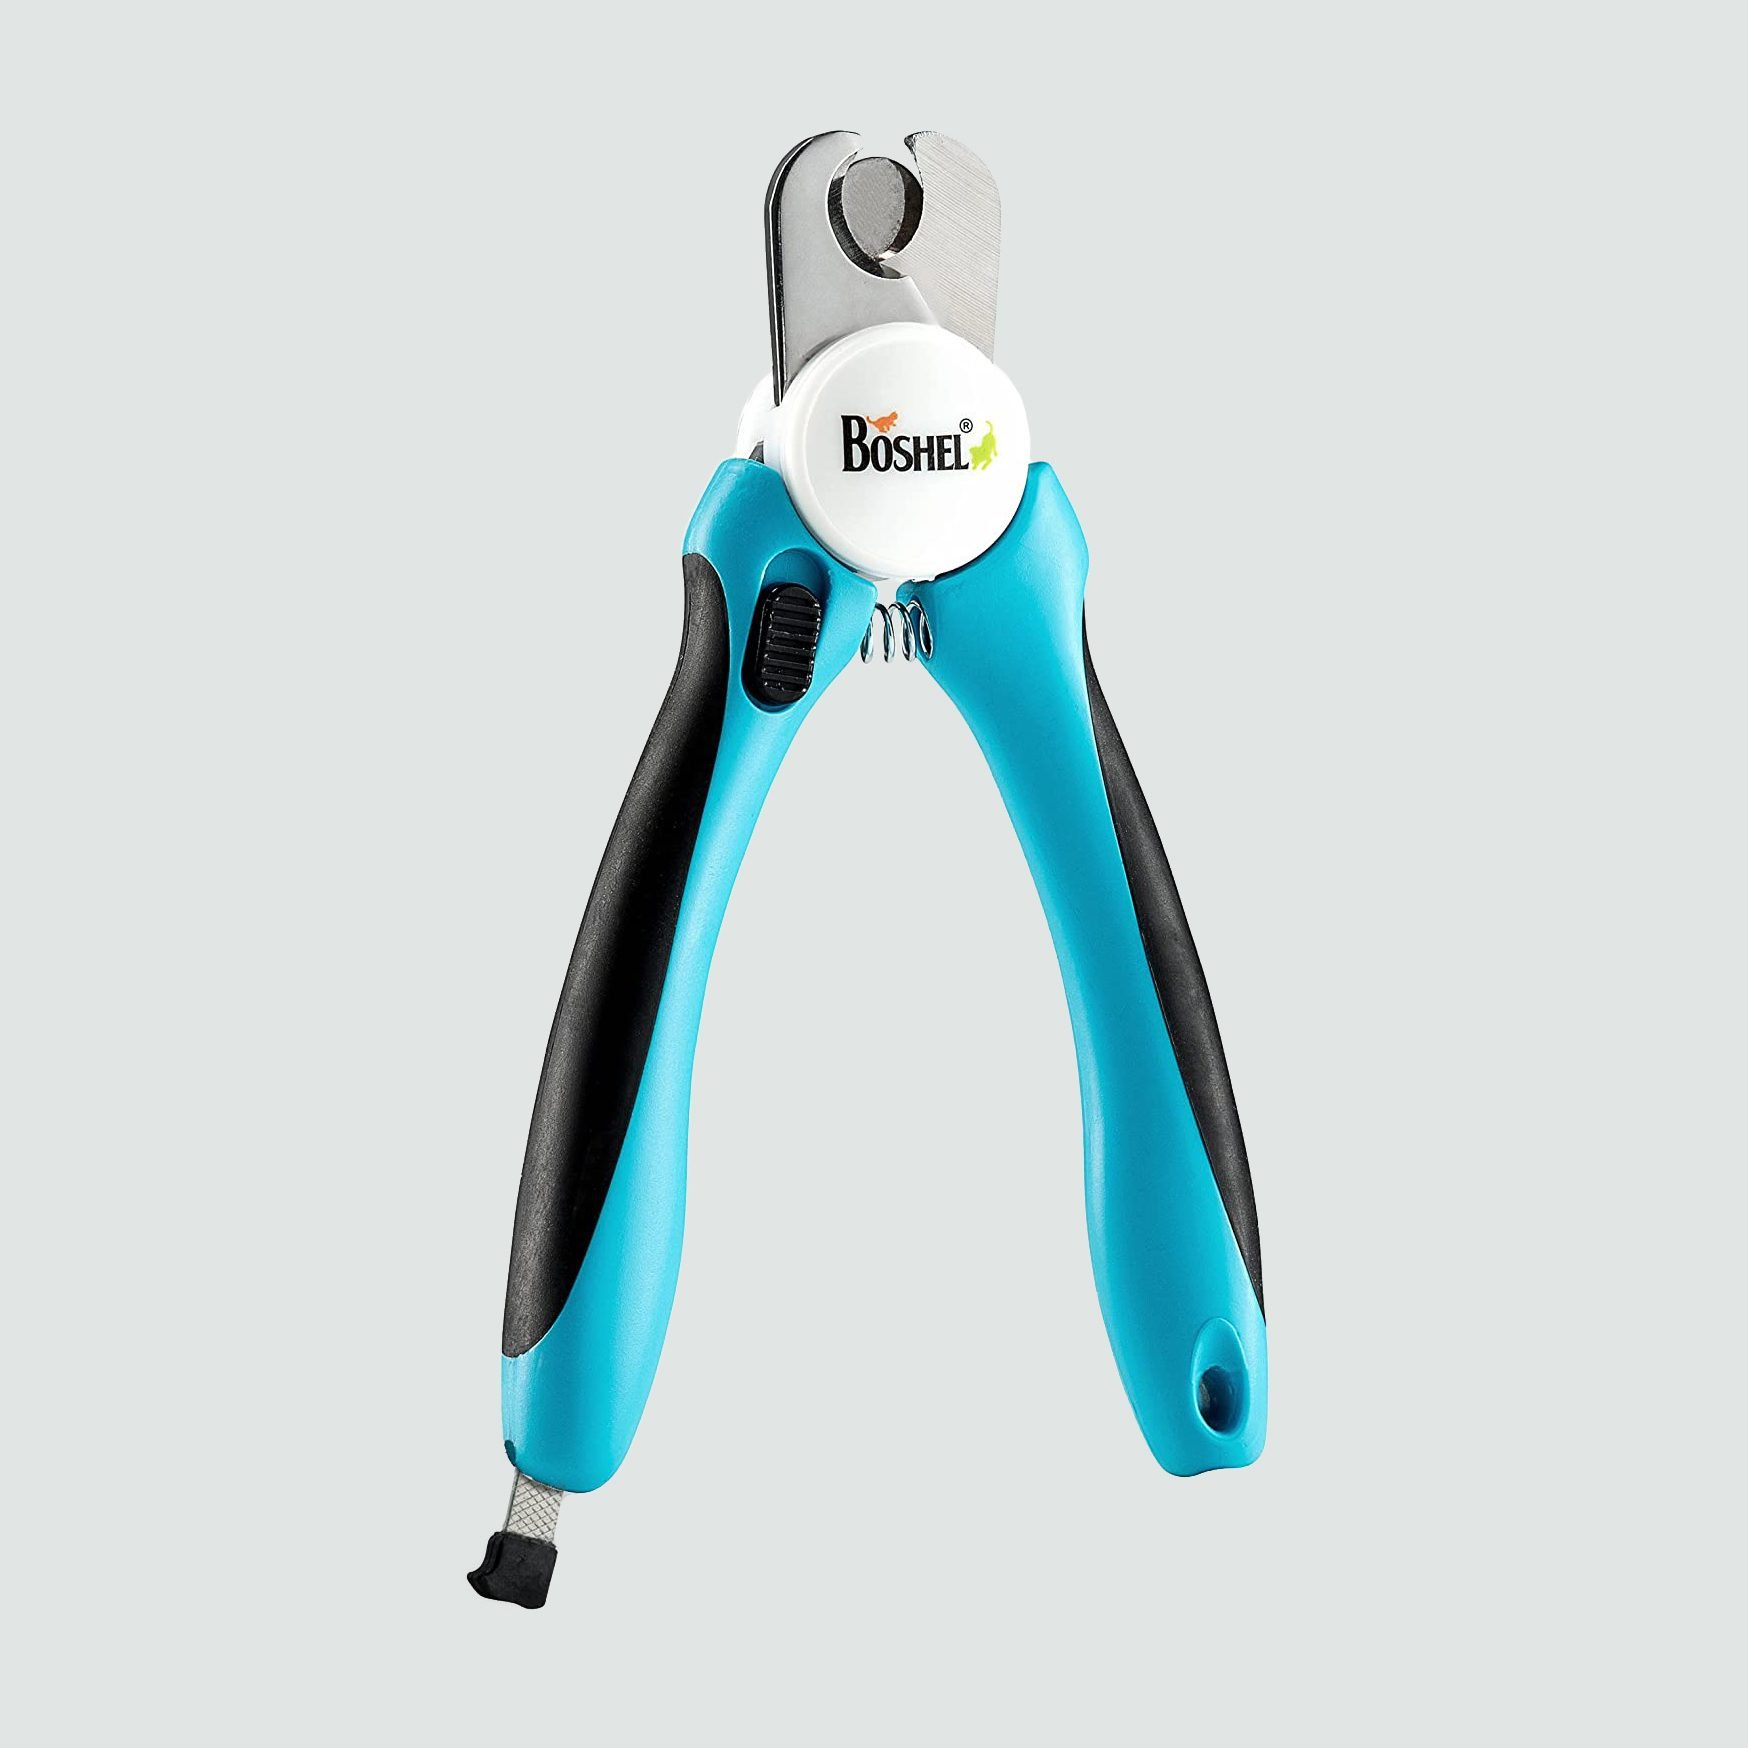 Boshel Dog Nail Clippers and Trimmer with Safety Guard